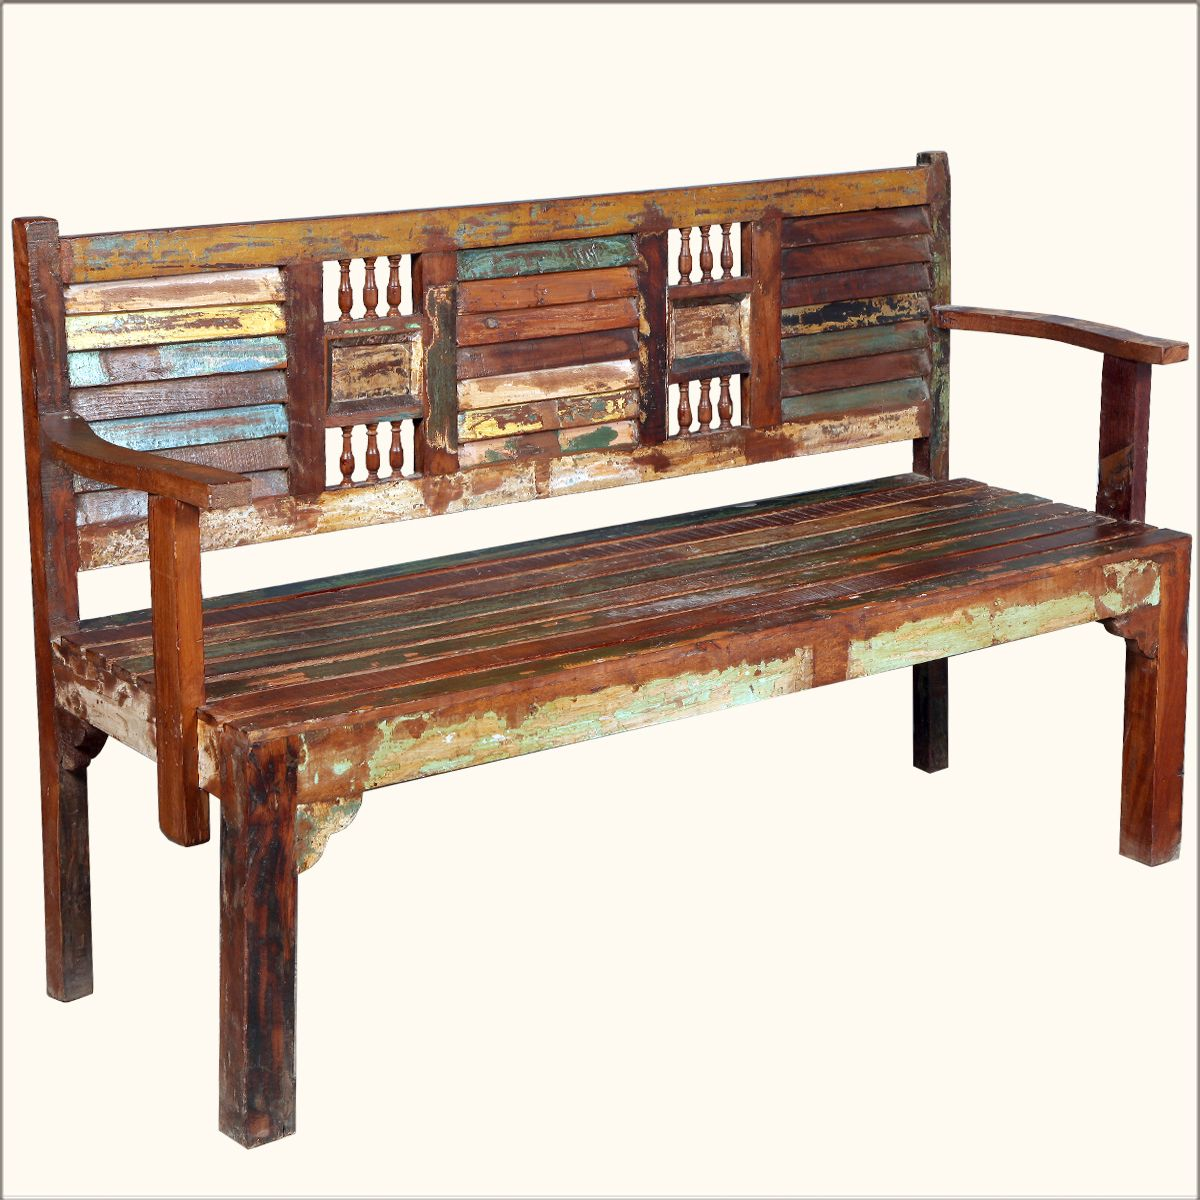 Cool 62 Reclaimed Wood Rustic Hand Carved Arms Bench Indoor Evergreenethics Interior Chair Design Evergreenethicsorg